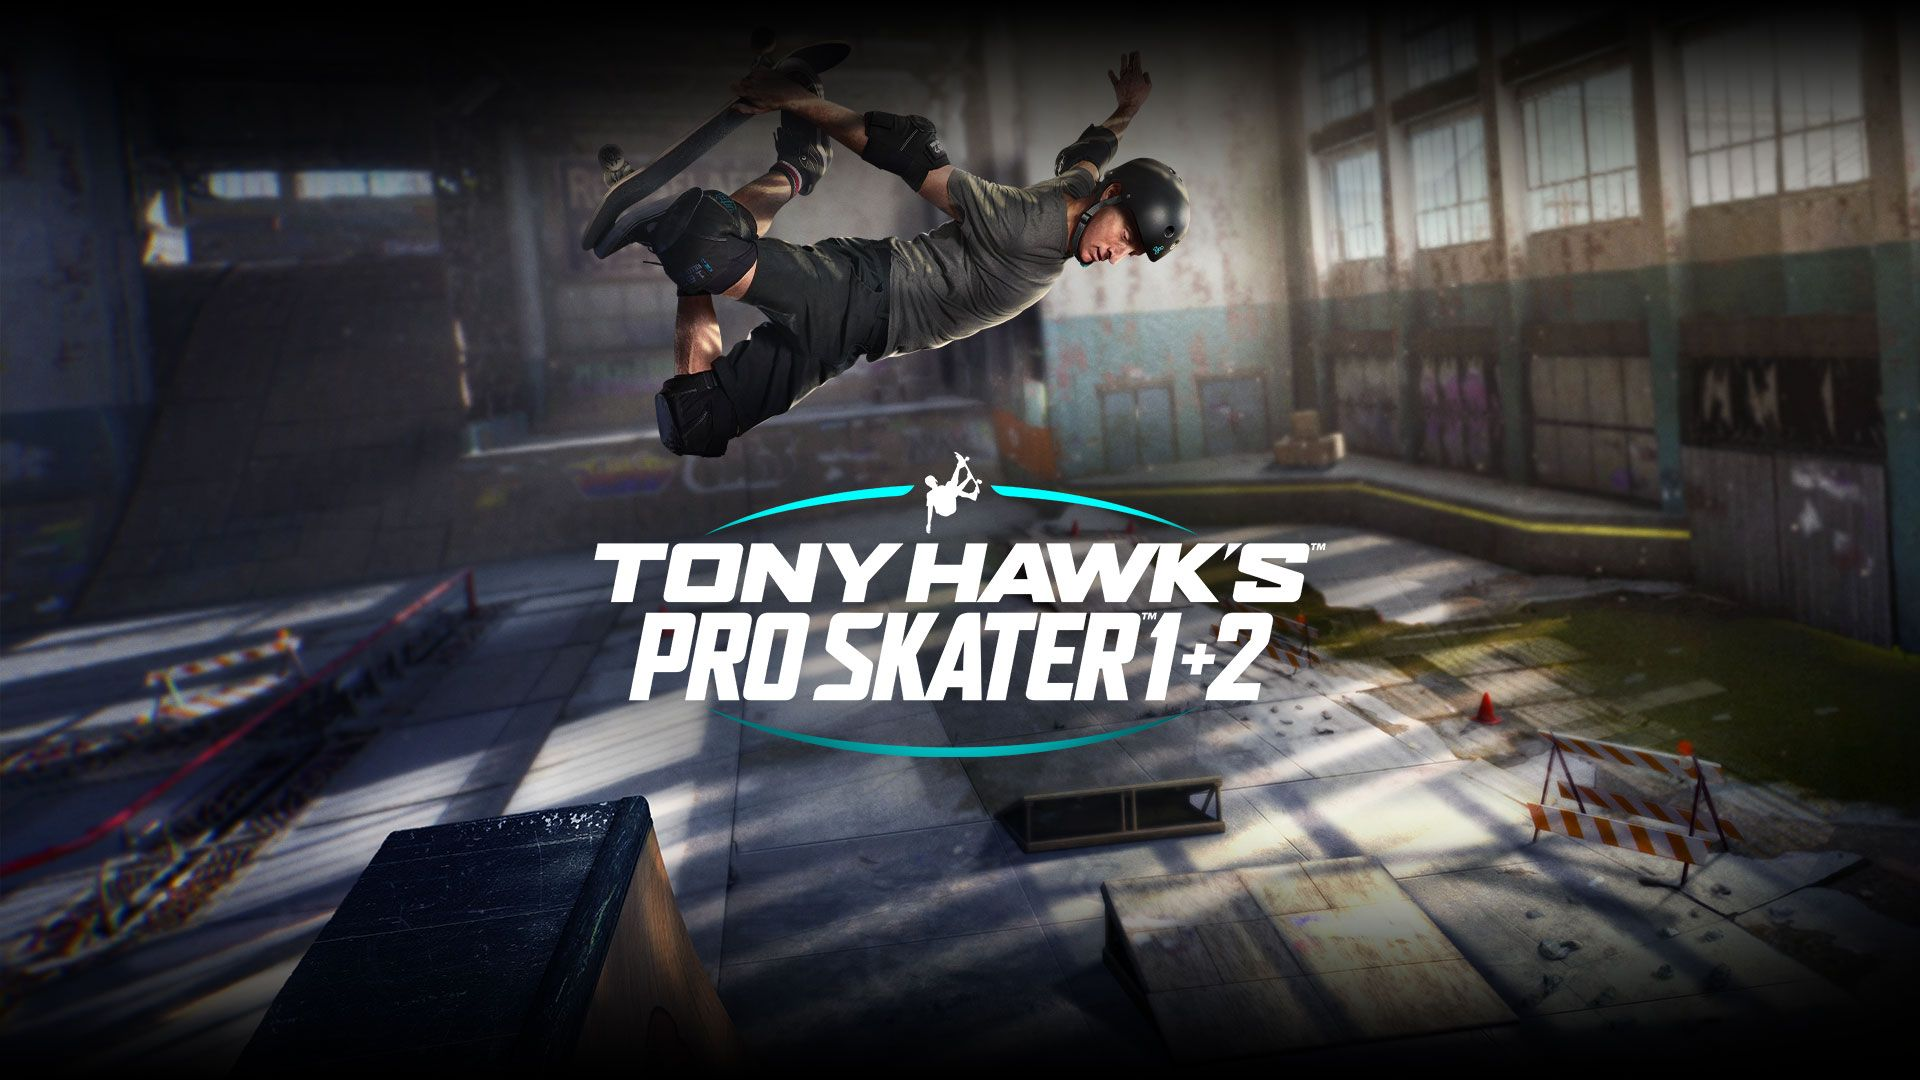 Tony Hawk's Pro Skater 1+2 Kickflips onto the Switch Later this Year